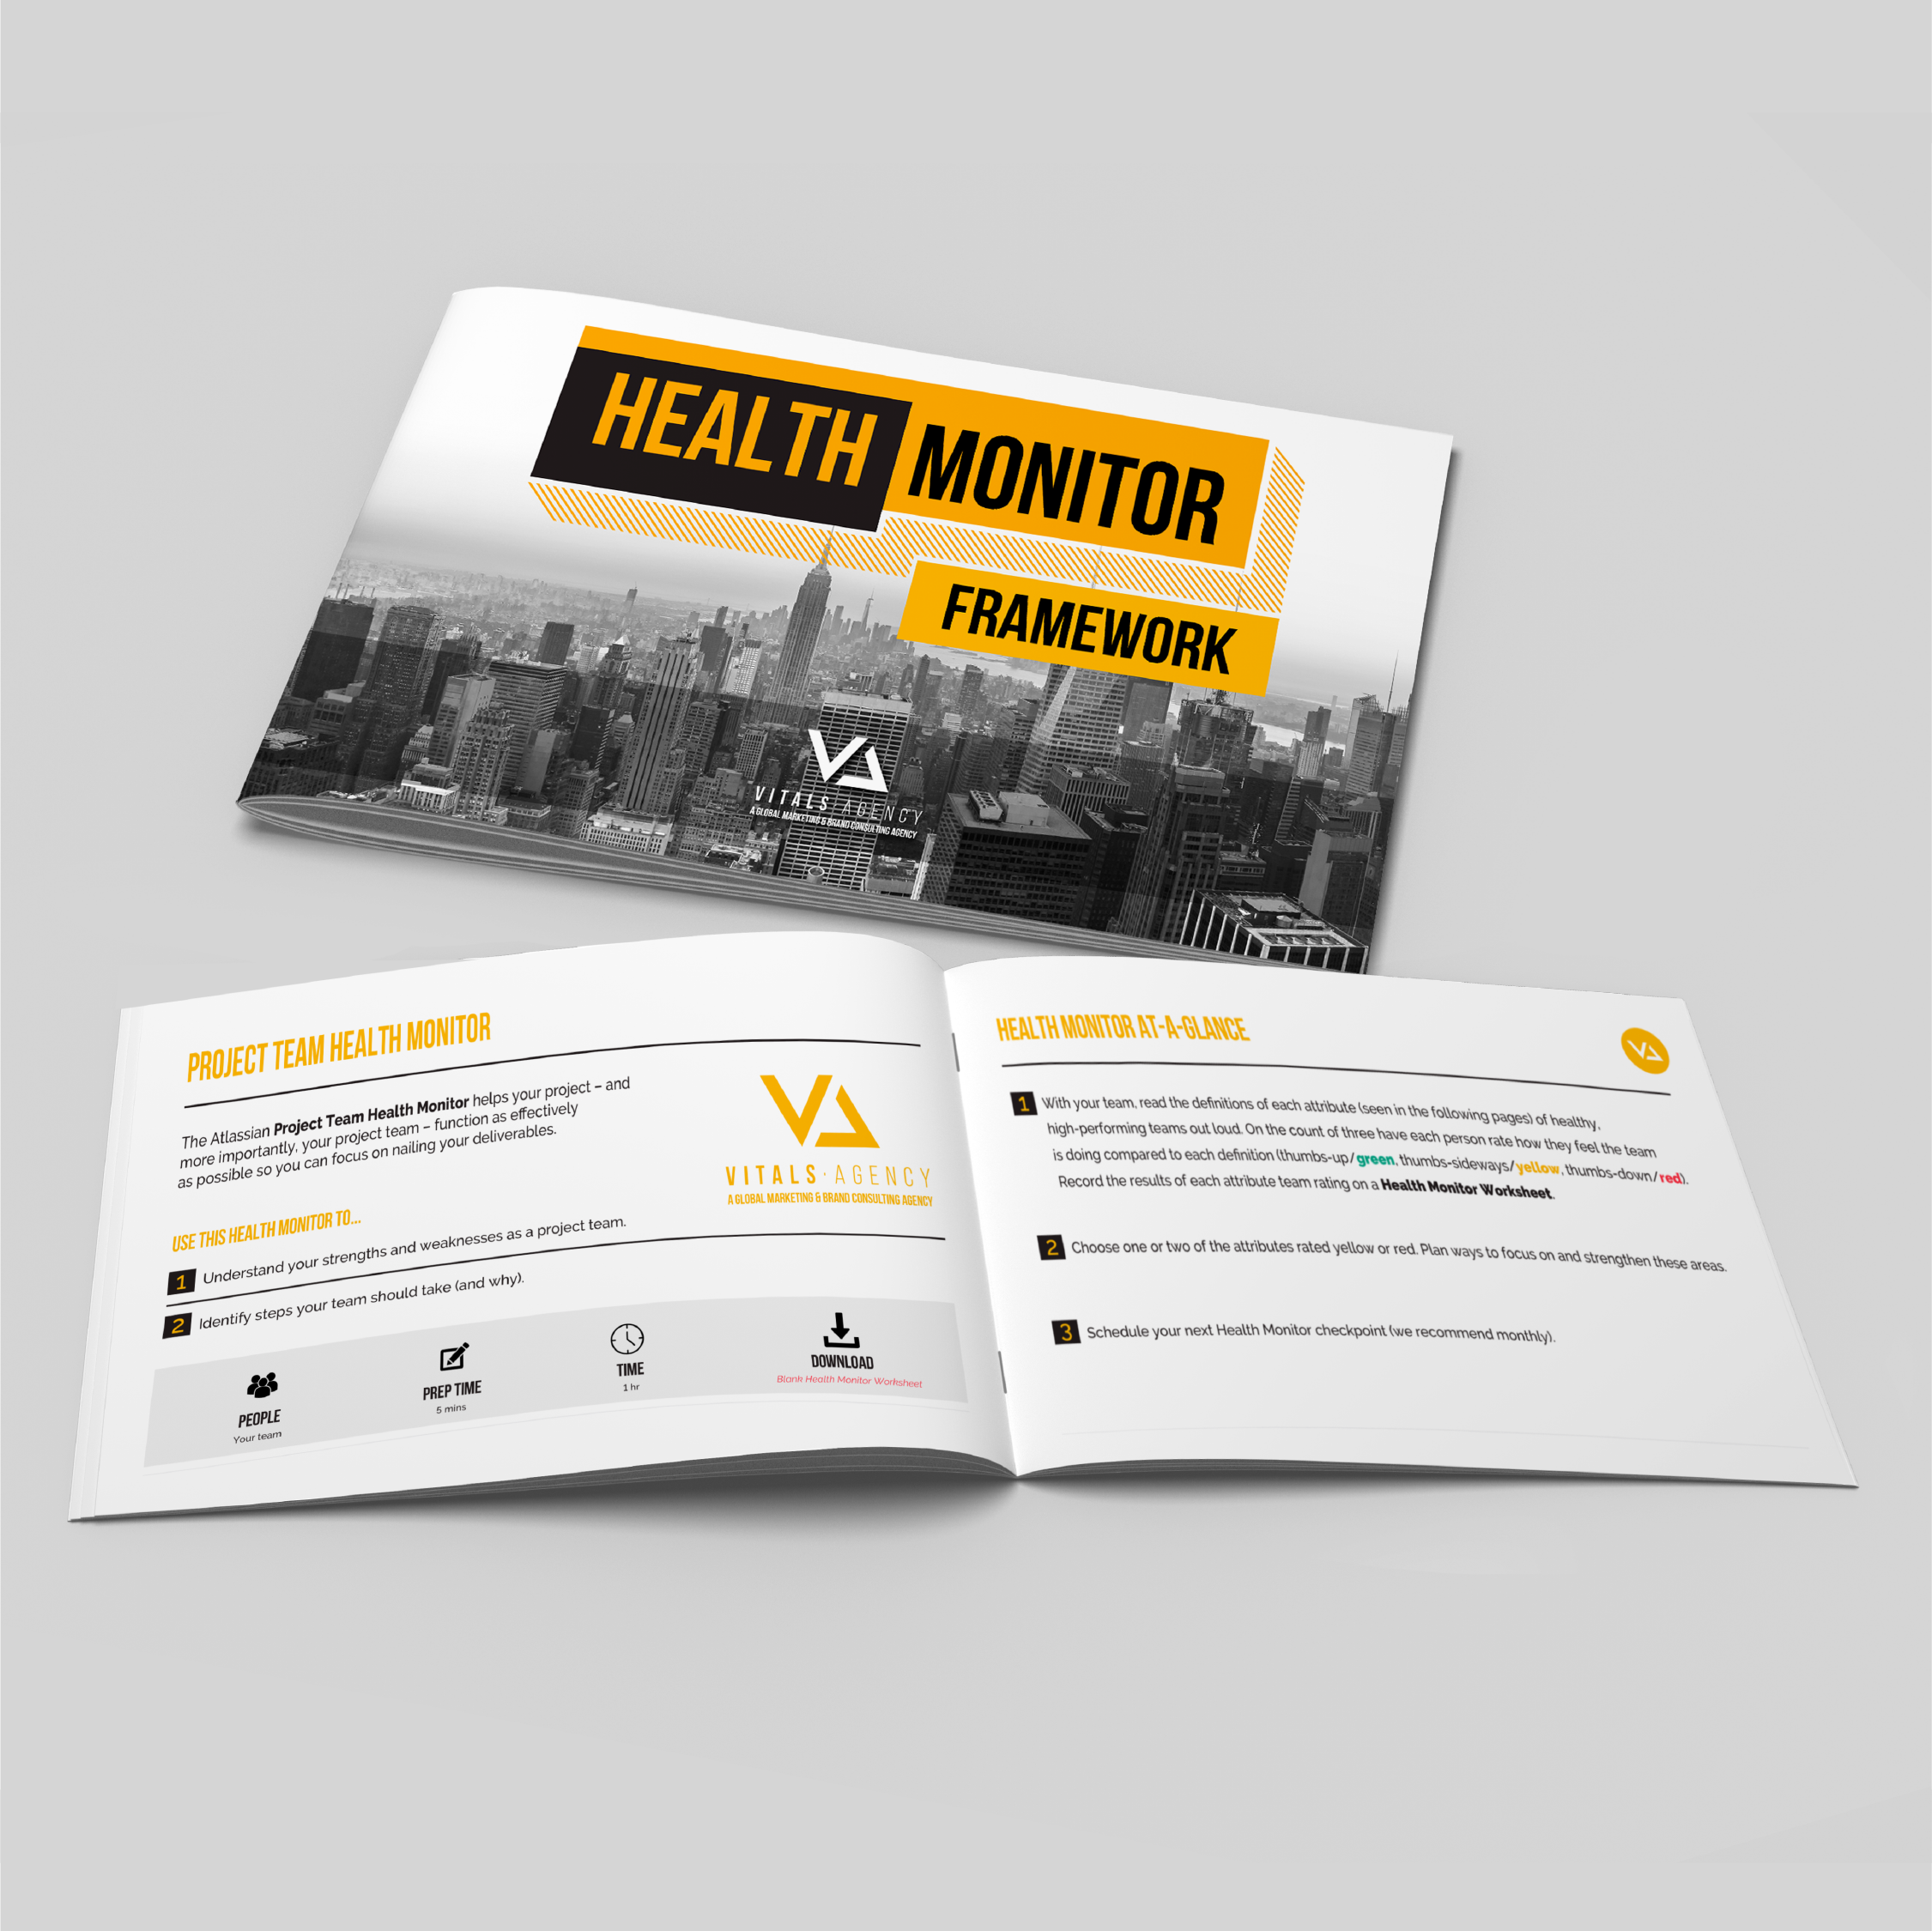 Health_Monitor_Framework_1